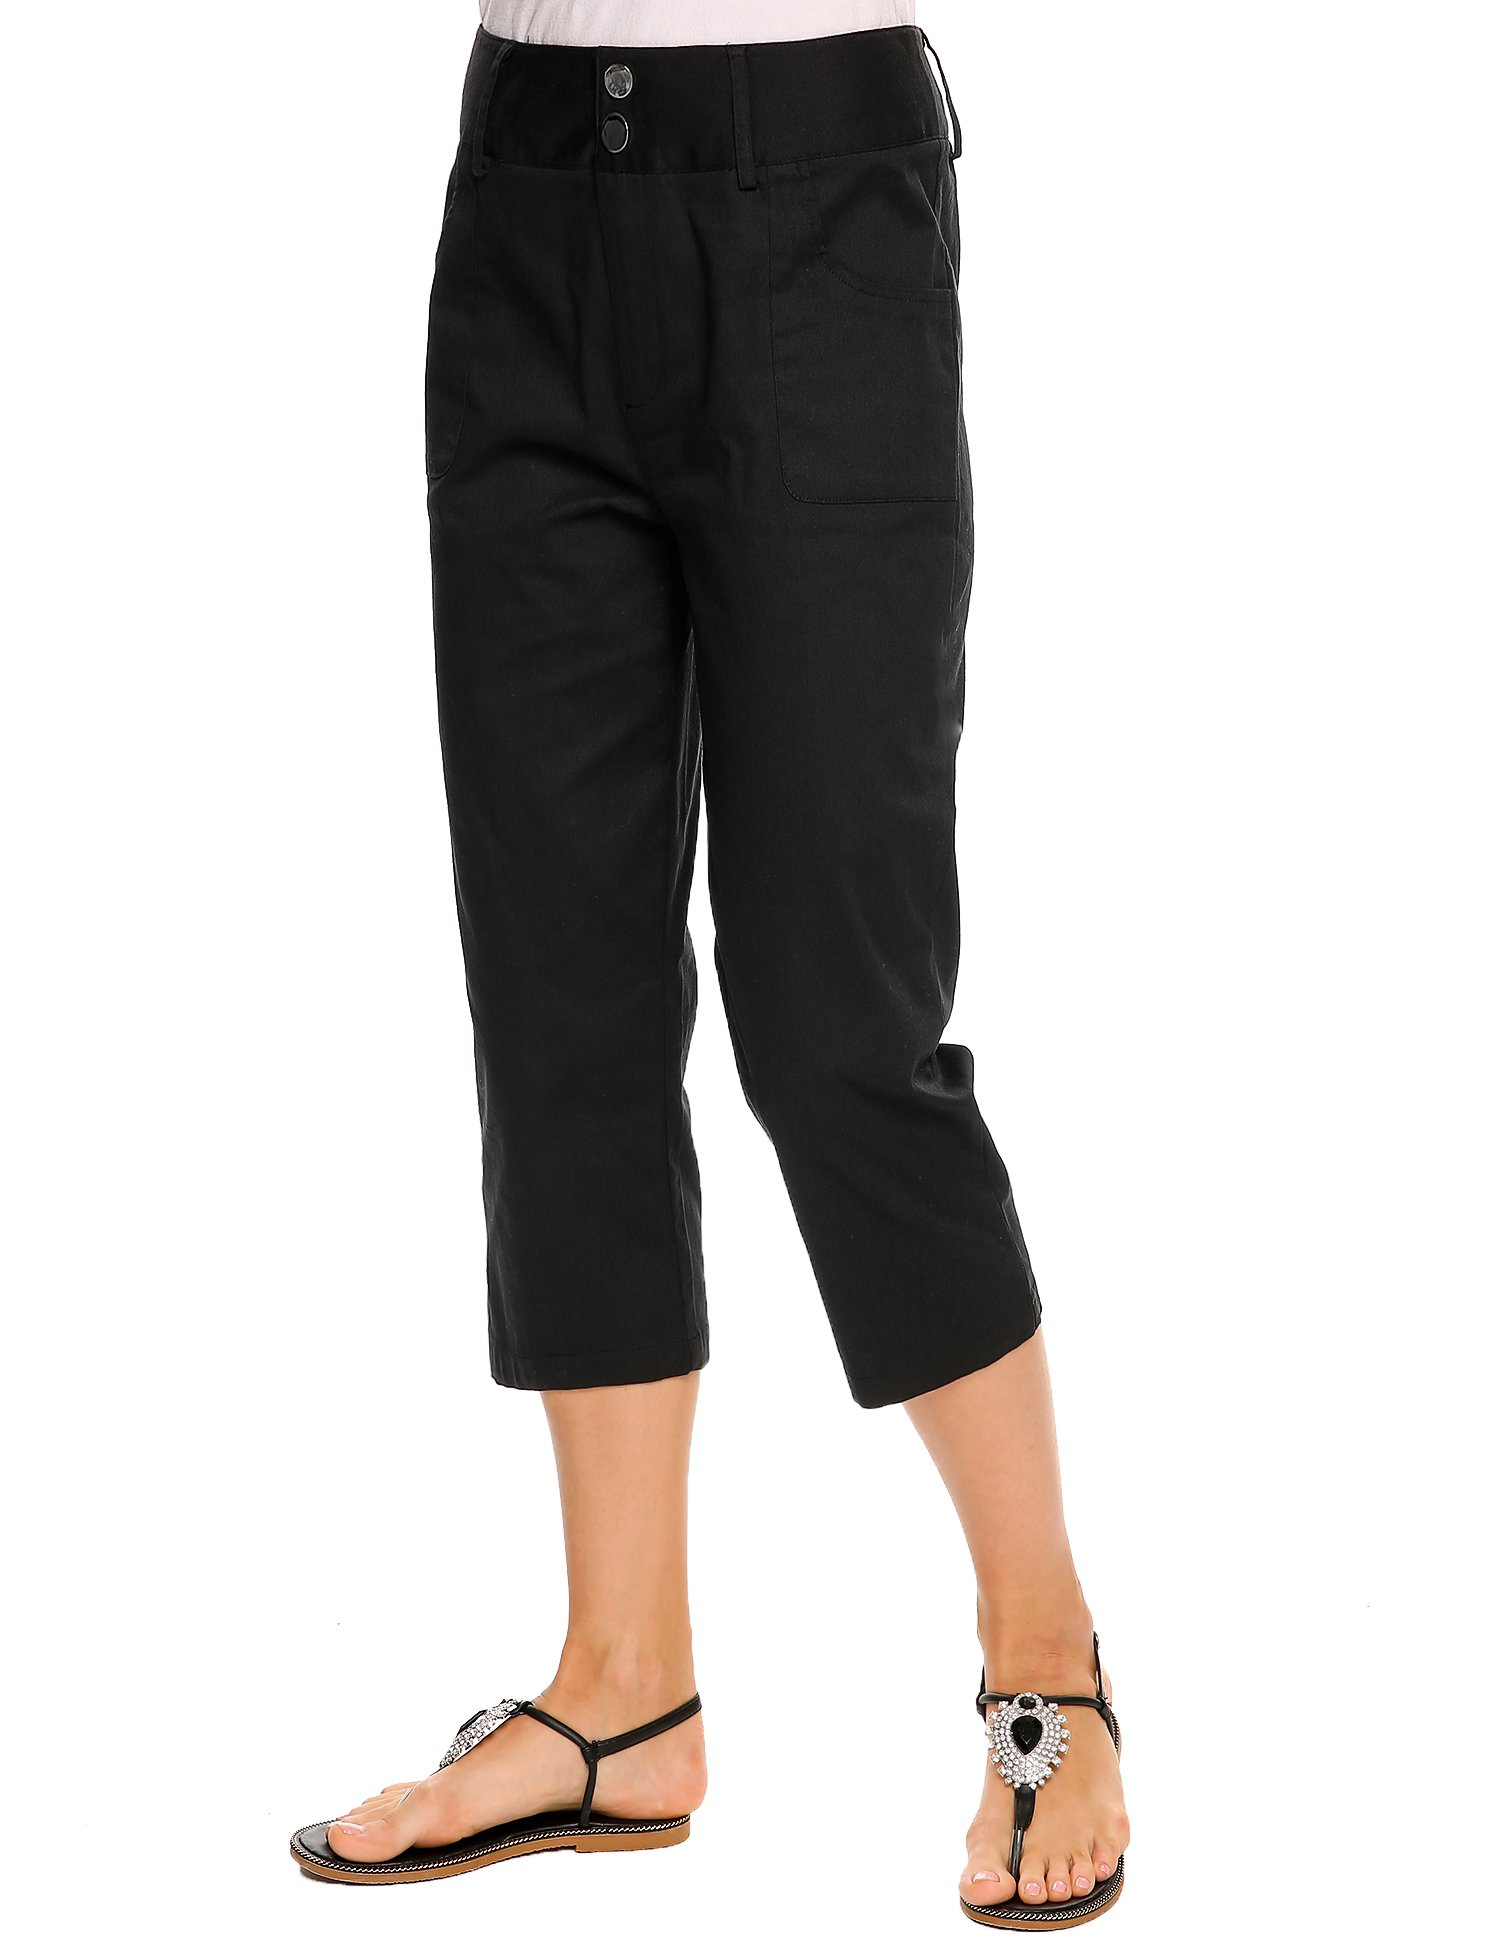 Women's Flat Front Stretch Twill Pant, Black, M